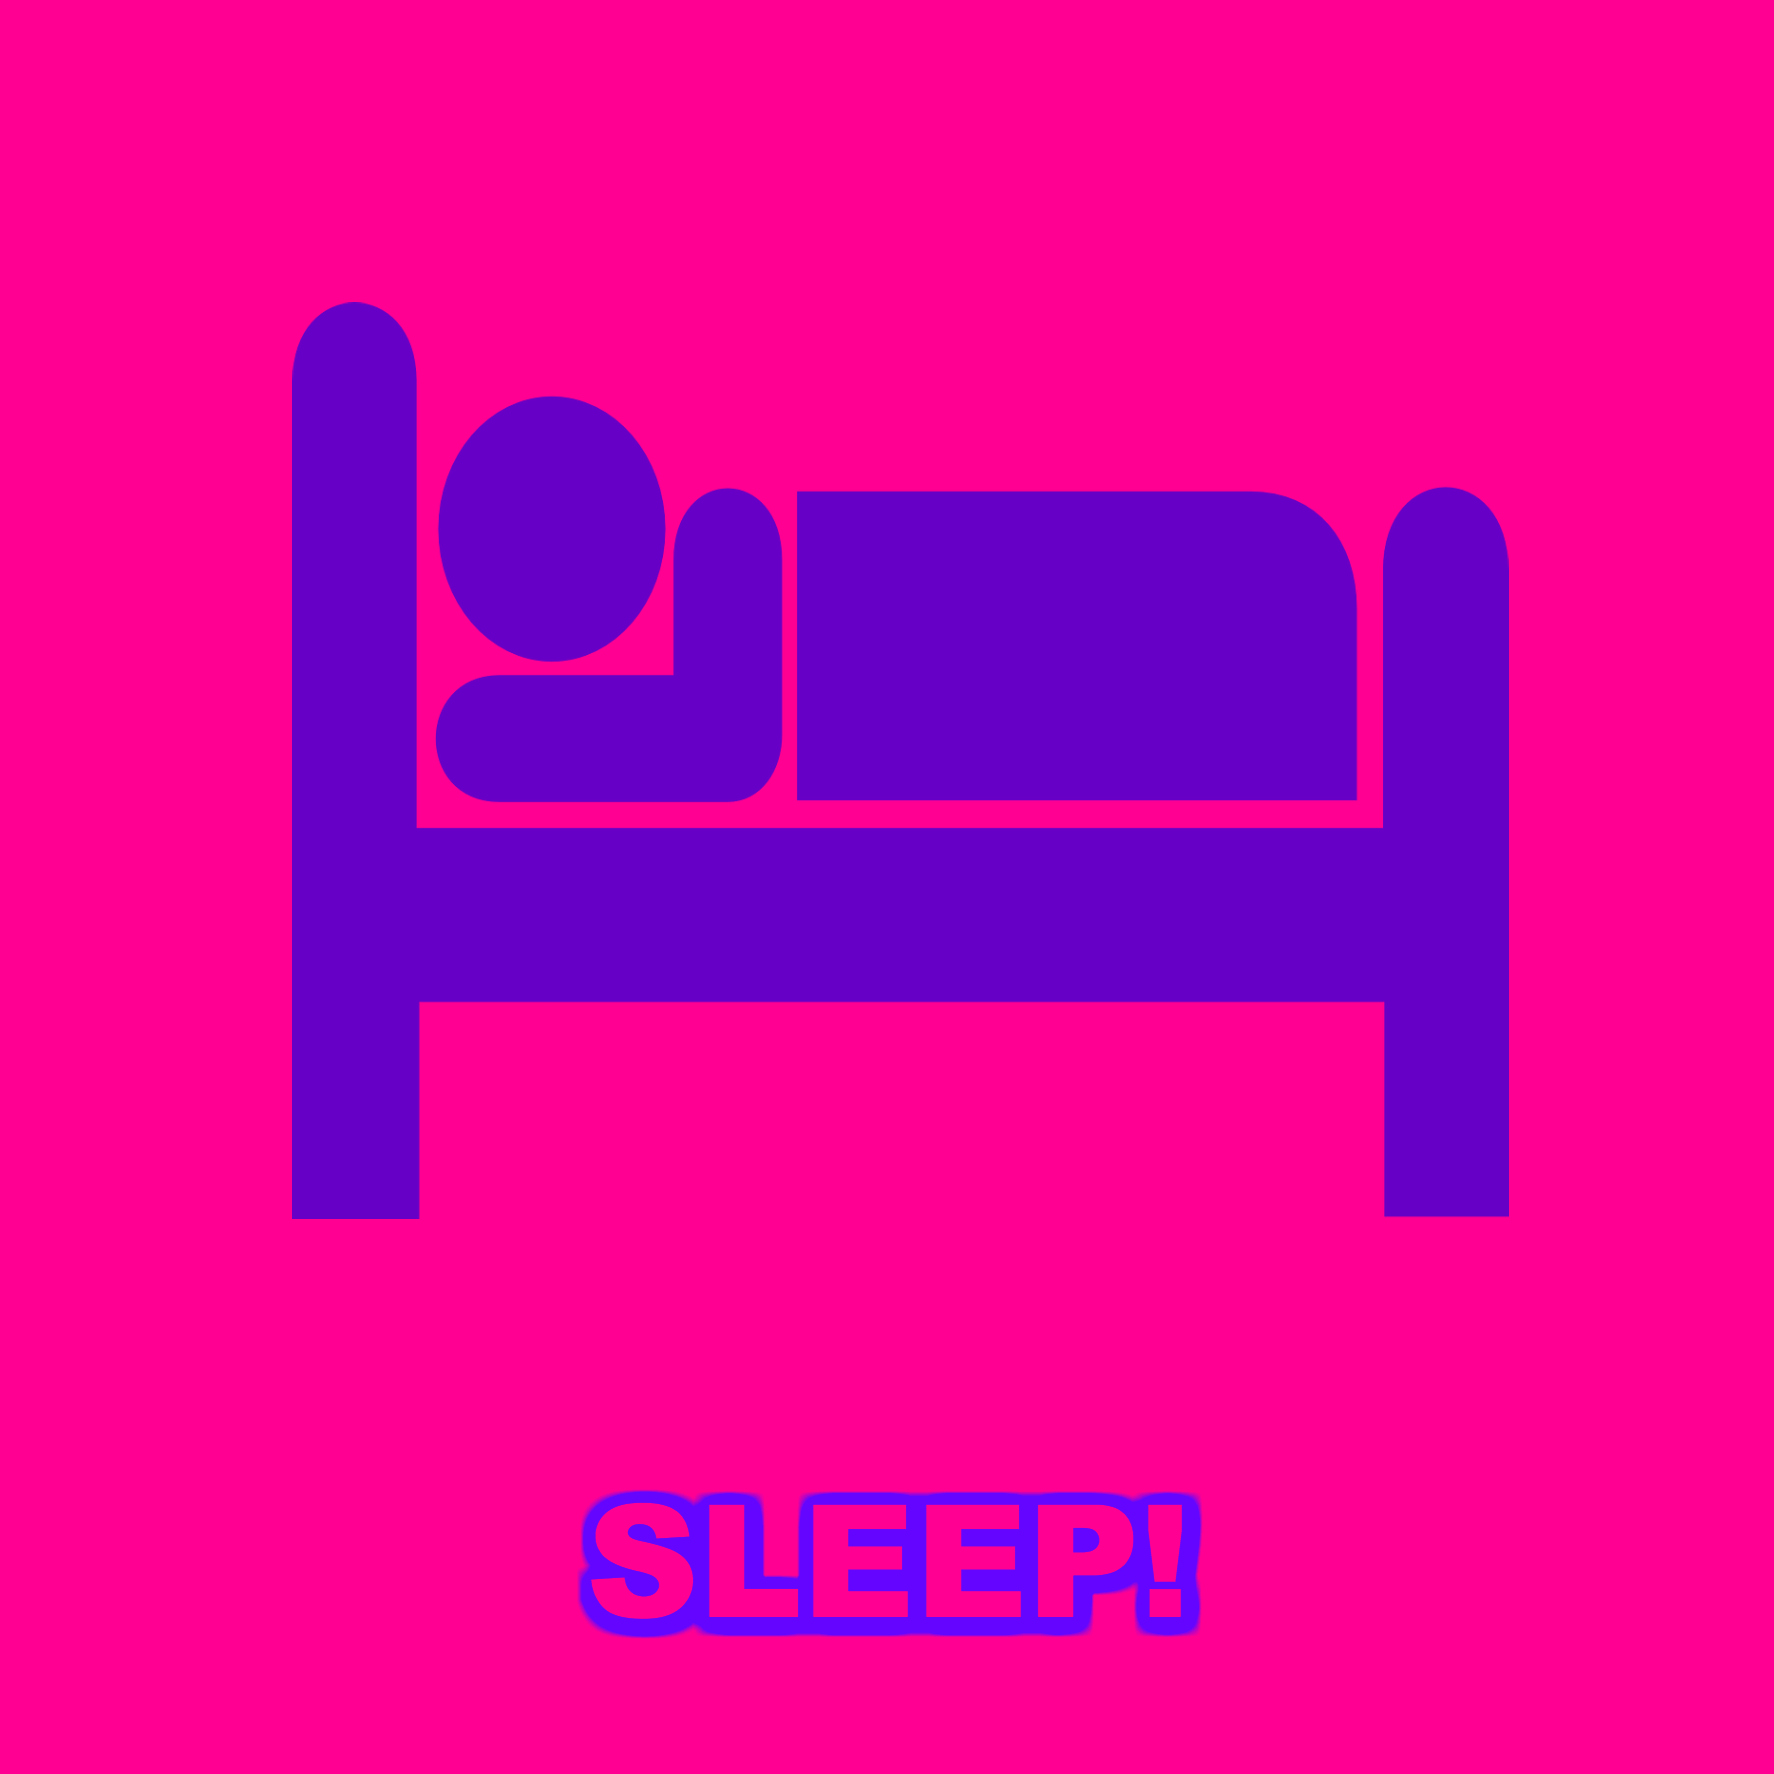 Sleep is SOOO Important.  With a good night's sleep you'll wake up refreshed and ready to kill it at the gym!You'll also have much more willpower and a more positive mindset!